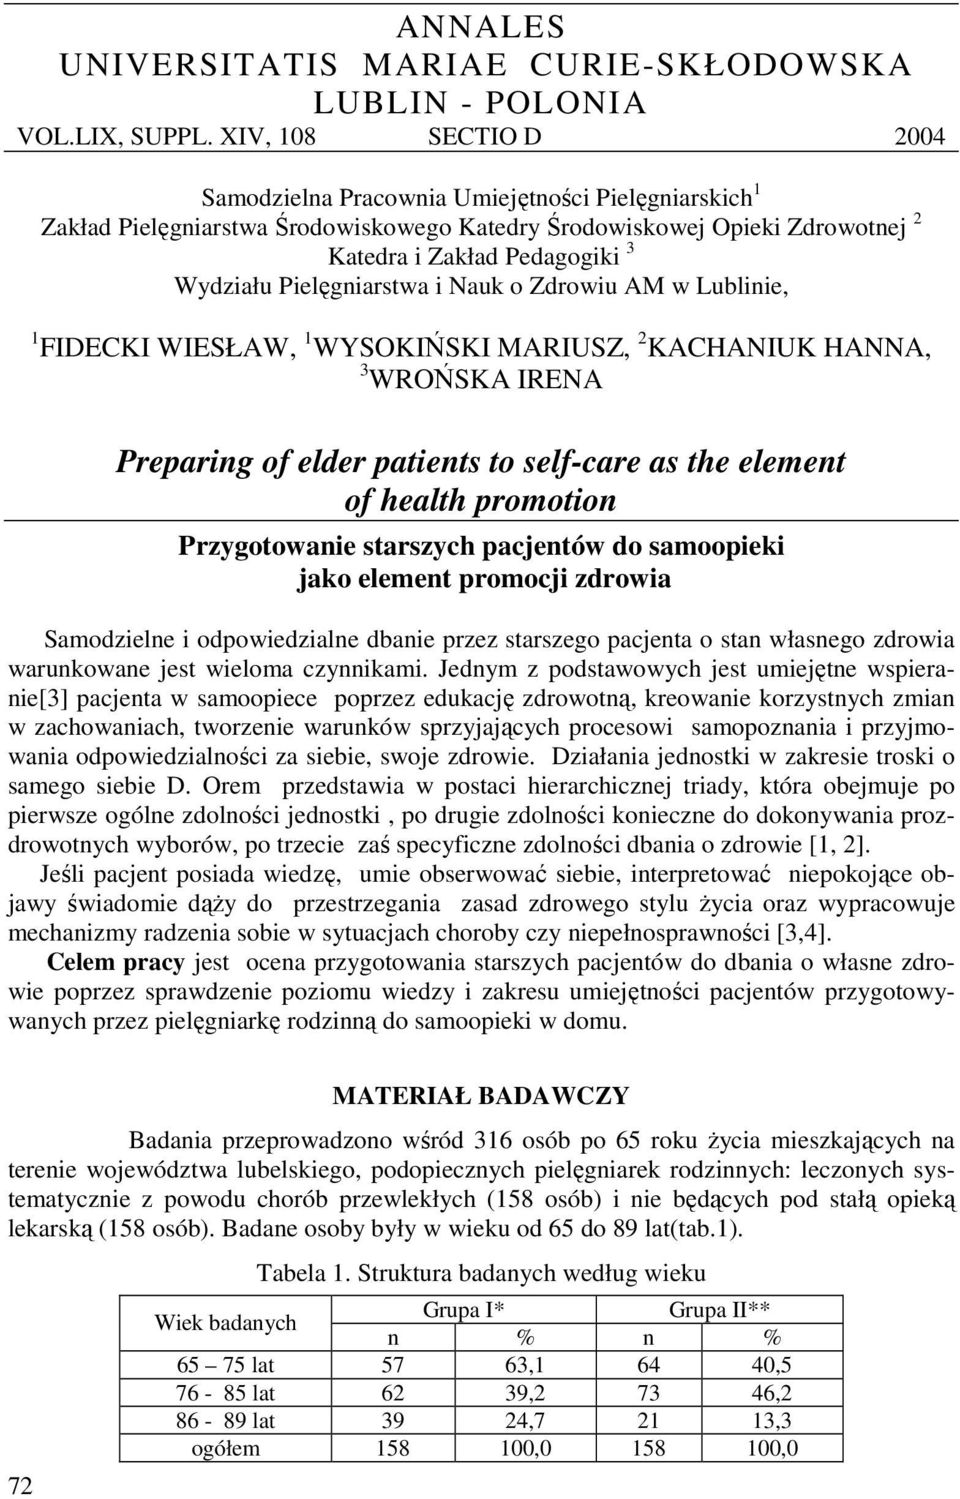 Pielęgniarstwa i Nauk o Zdrowiu AM w Lublinie, 1 FIDECKI WIESŁAW, 1 WYSOKIŃSKI MARIUSZ, 2 KACHANIUK HANNA, 3 WROŃSKA IRENA Preparing of elder patients to self-care as the element of health promotion